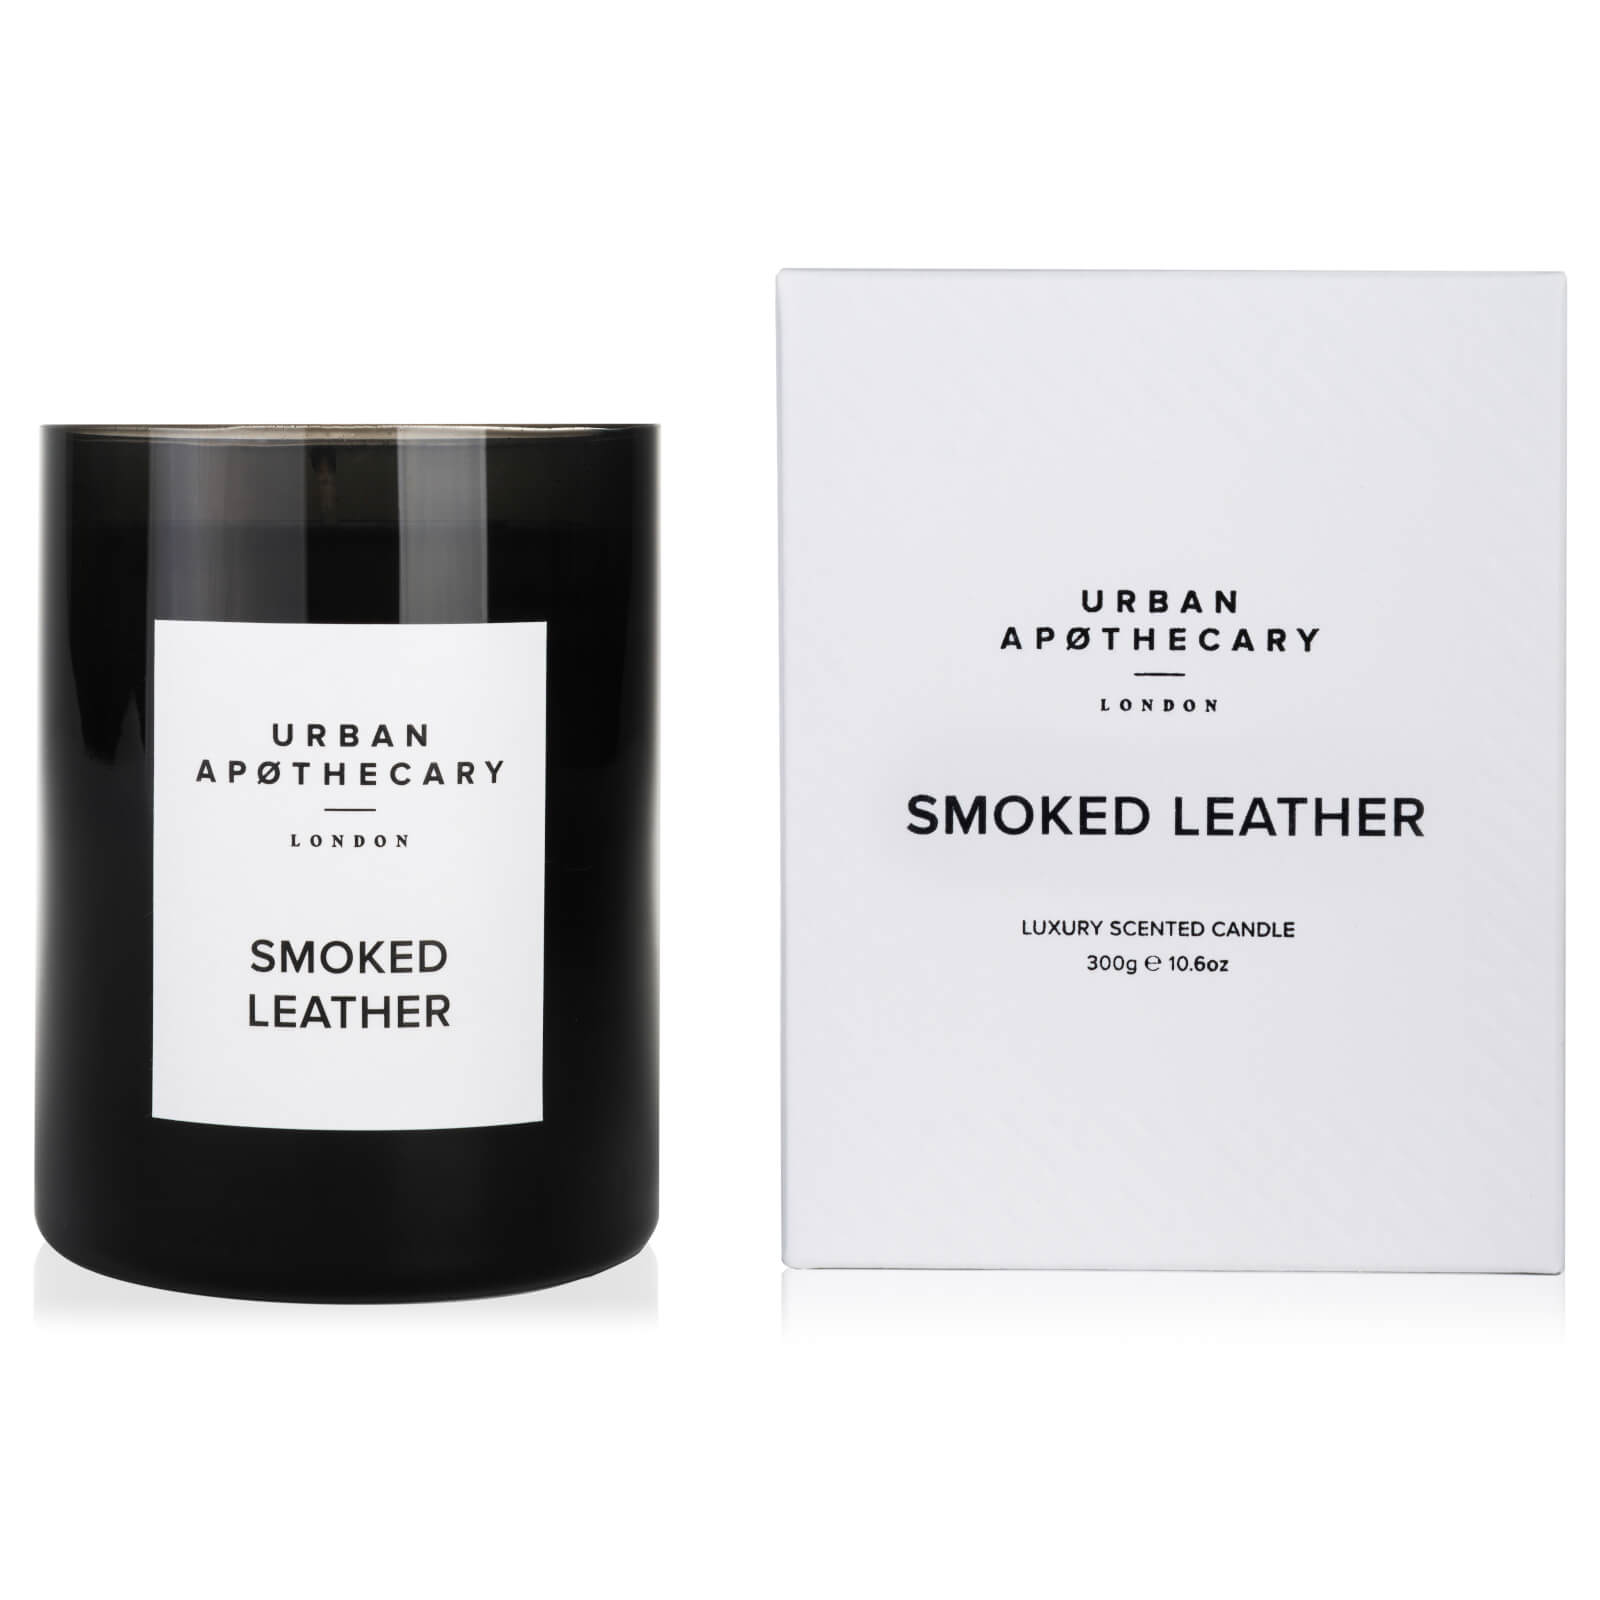 Urban Apothecary Smoked Leather Luxury Candle - 300g